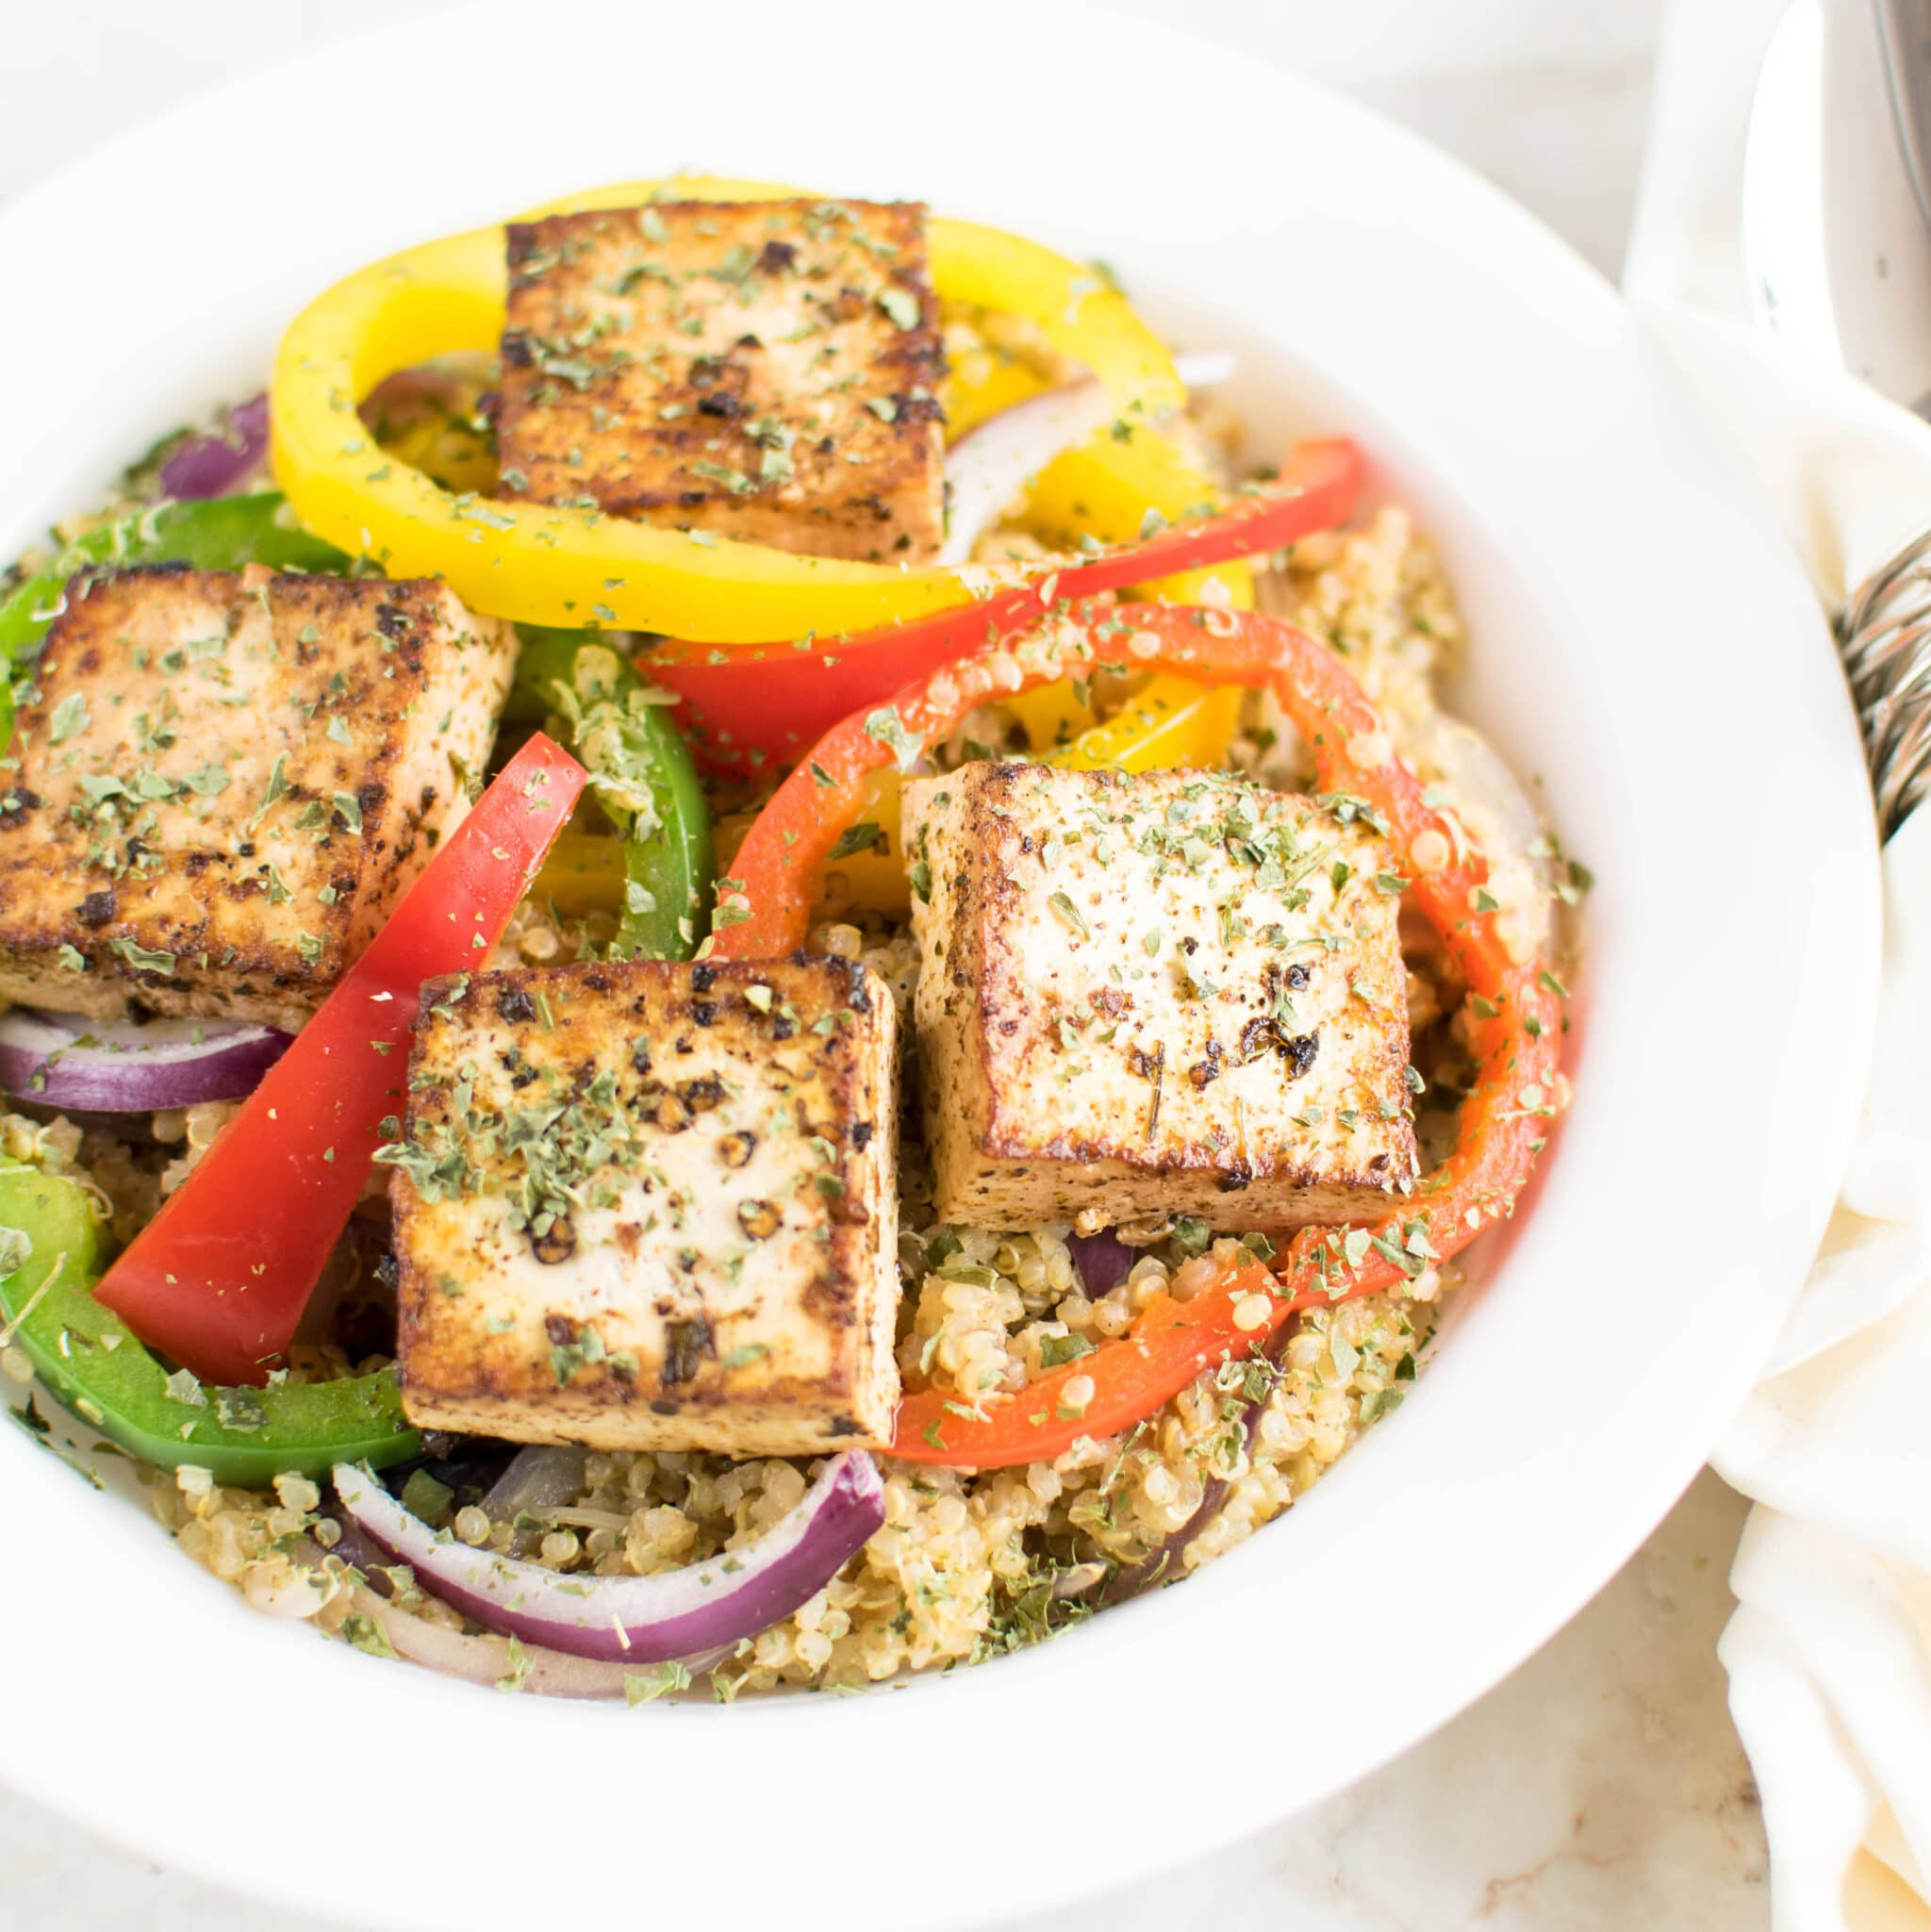 Red Wine Vinegar Tofu with Quinoa is a close up view shown in this image | kiipfit.com